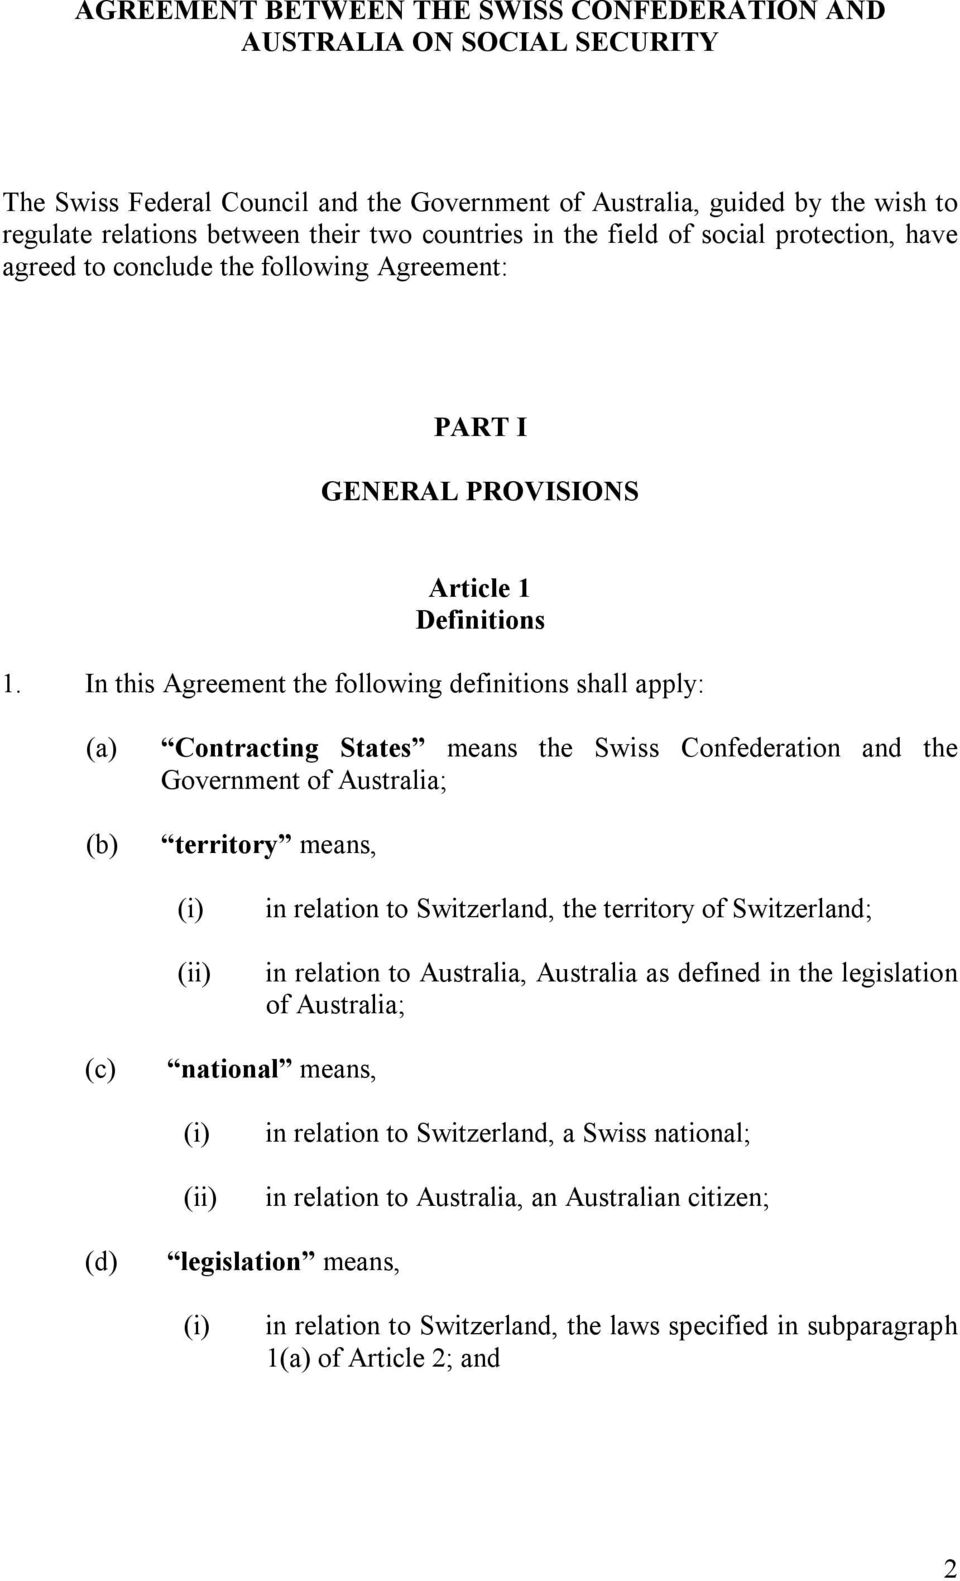 In this Agreement the following definitions shall apply: Contracting States means the Swiss Confederation and the Government of Australia; territory means, (ii) in relation to Switzerland, the